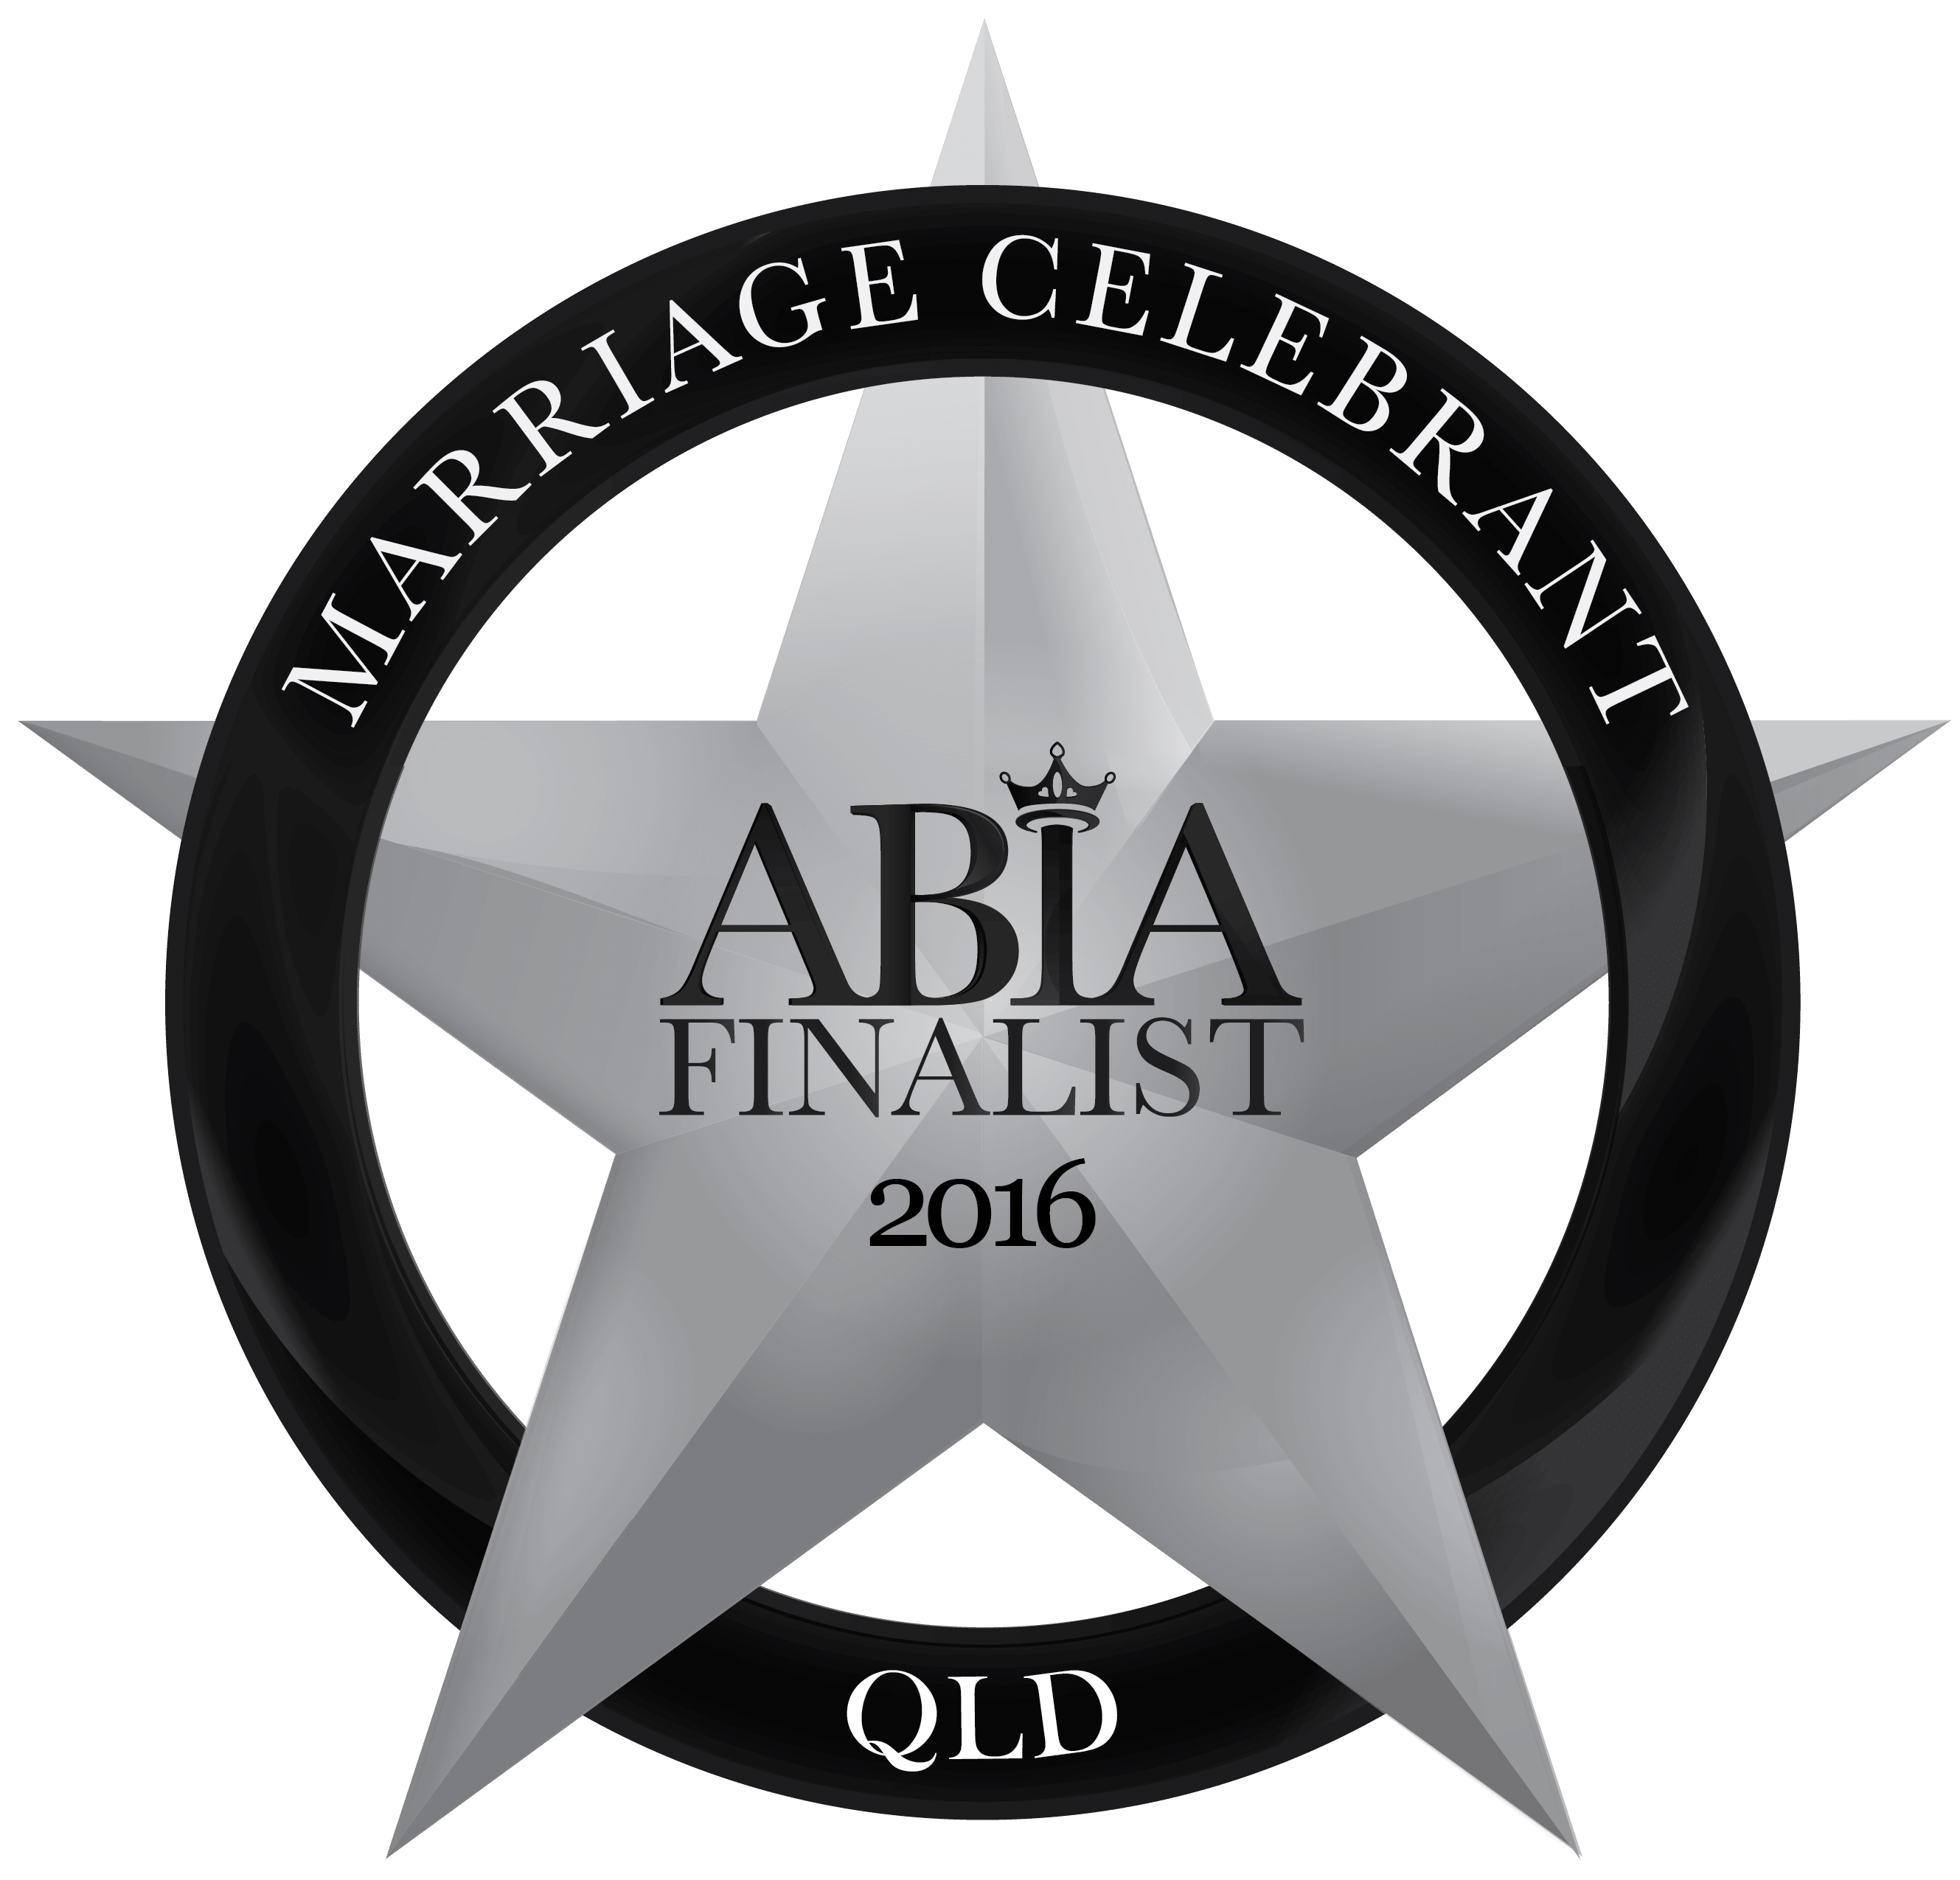 Celebrant-QLD-16_RUNNER-UP_FINALIST (1)